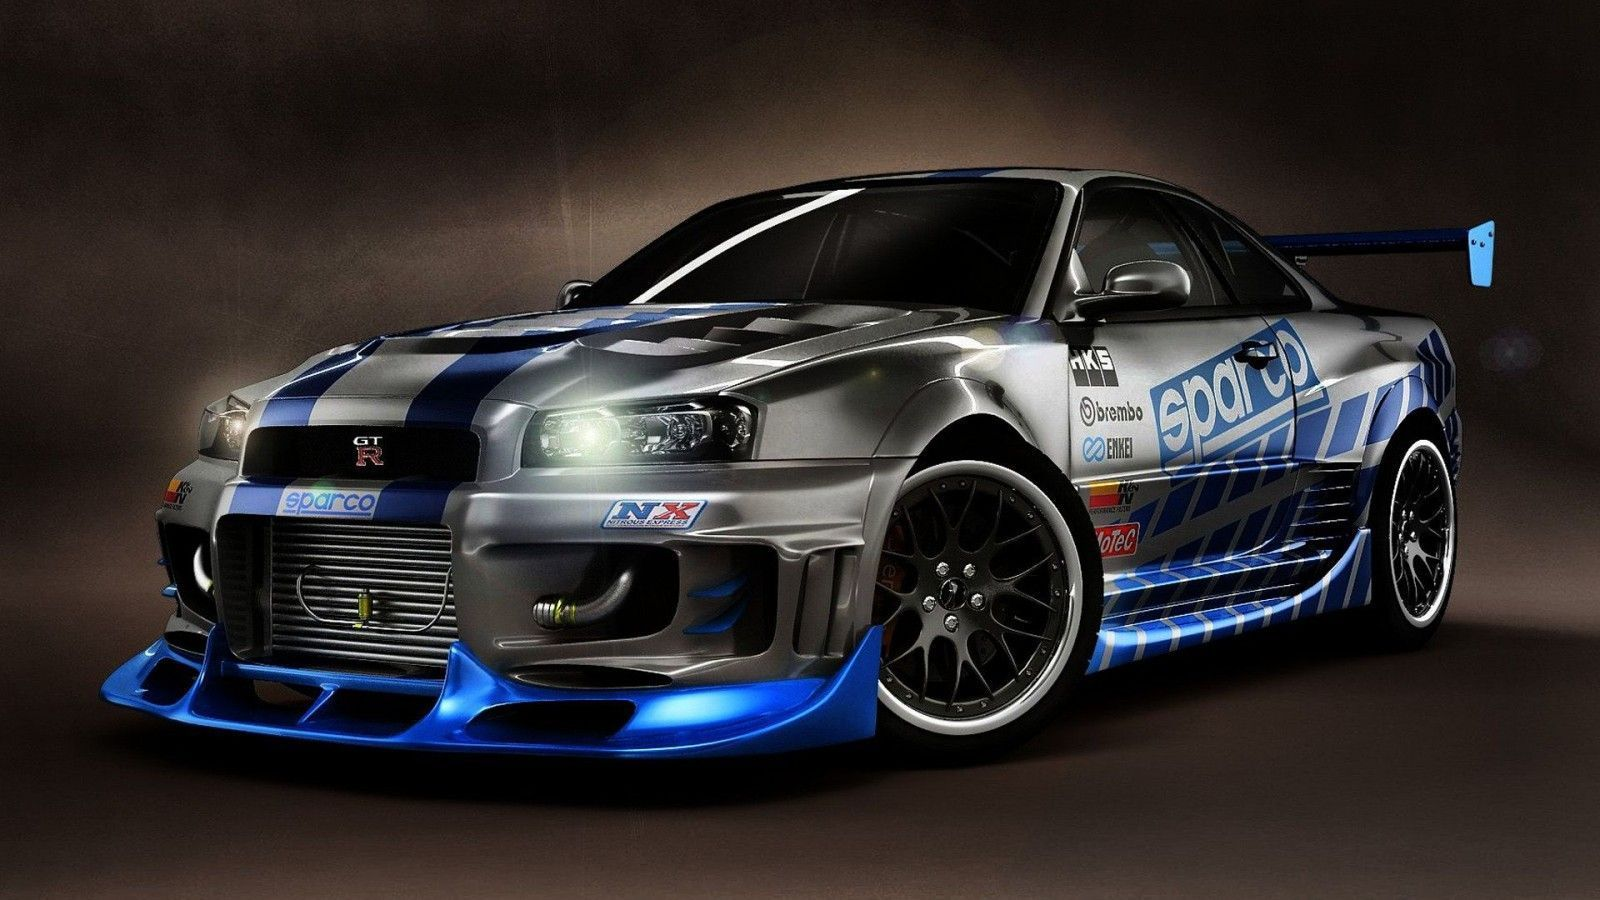 Fast And Furious Cars Wallpapers Wallpaper Cave Nissan Skyline